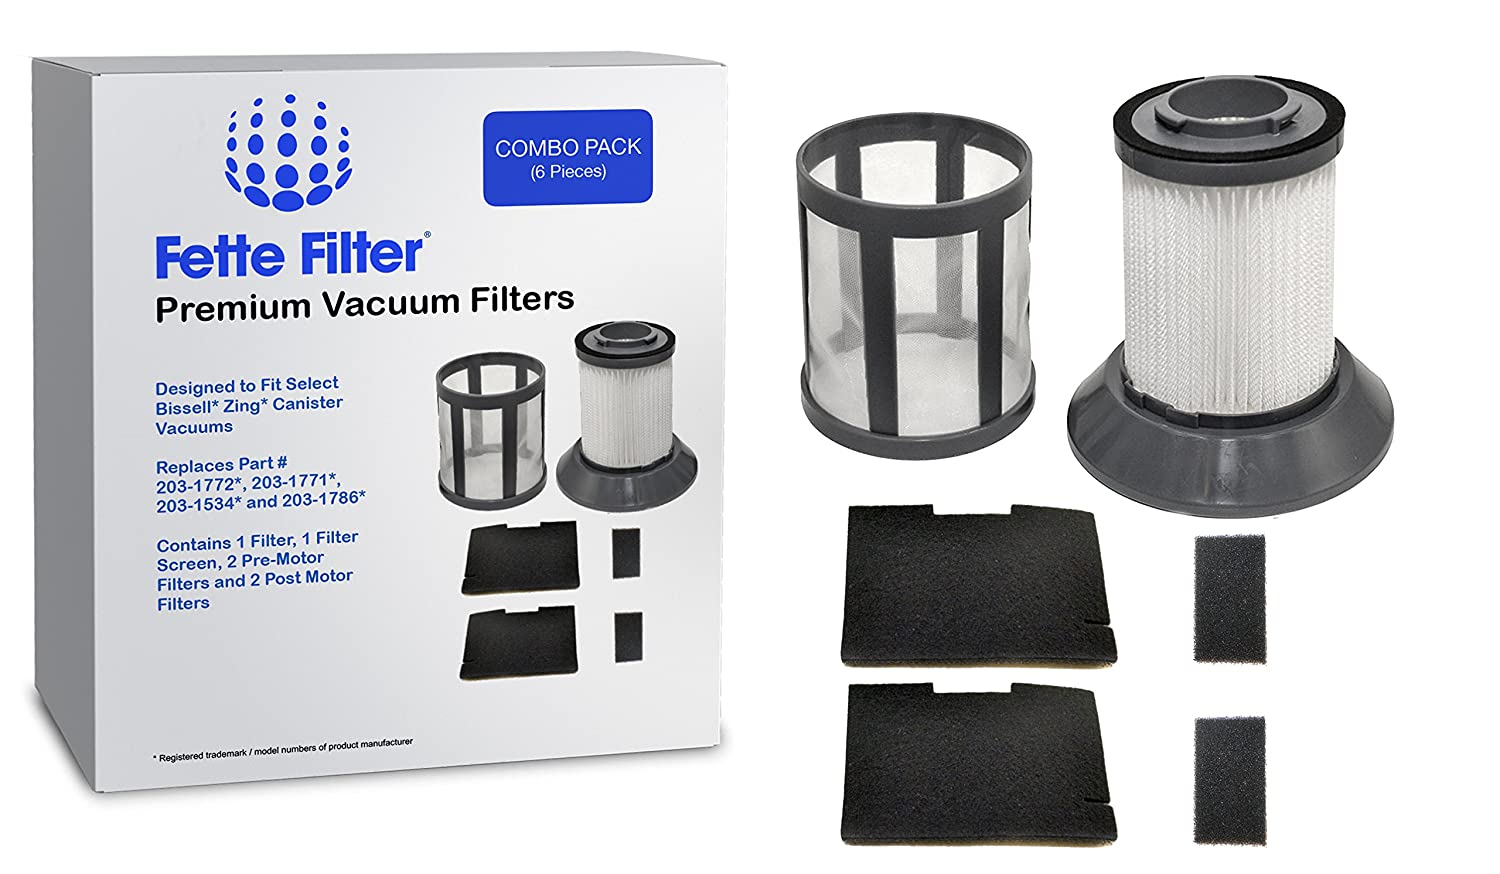 Fette Filter - Vacuum Filter Set Compatible with Bissell Zing - Compare to Part # 203-1772, 203-1771, 203-1534, 203-1786 - Combo Pack